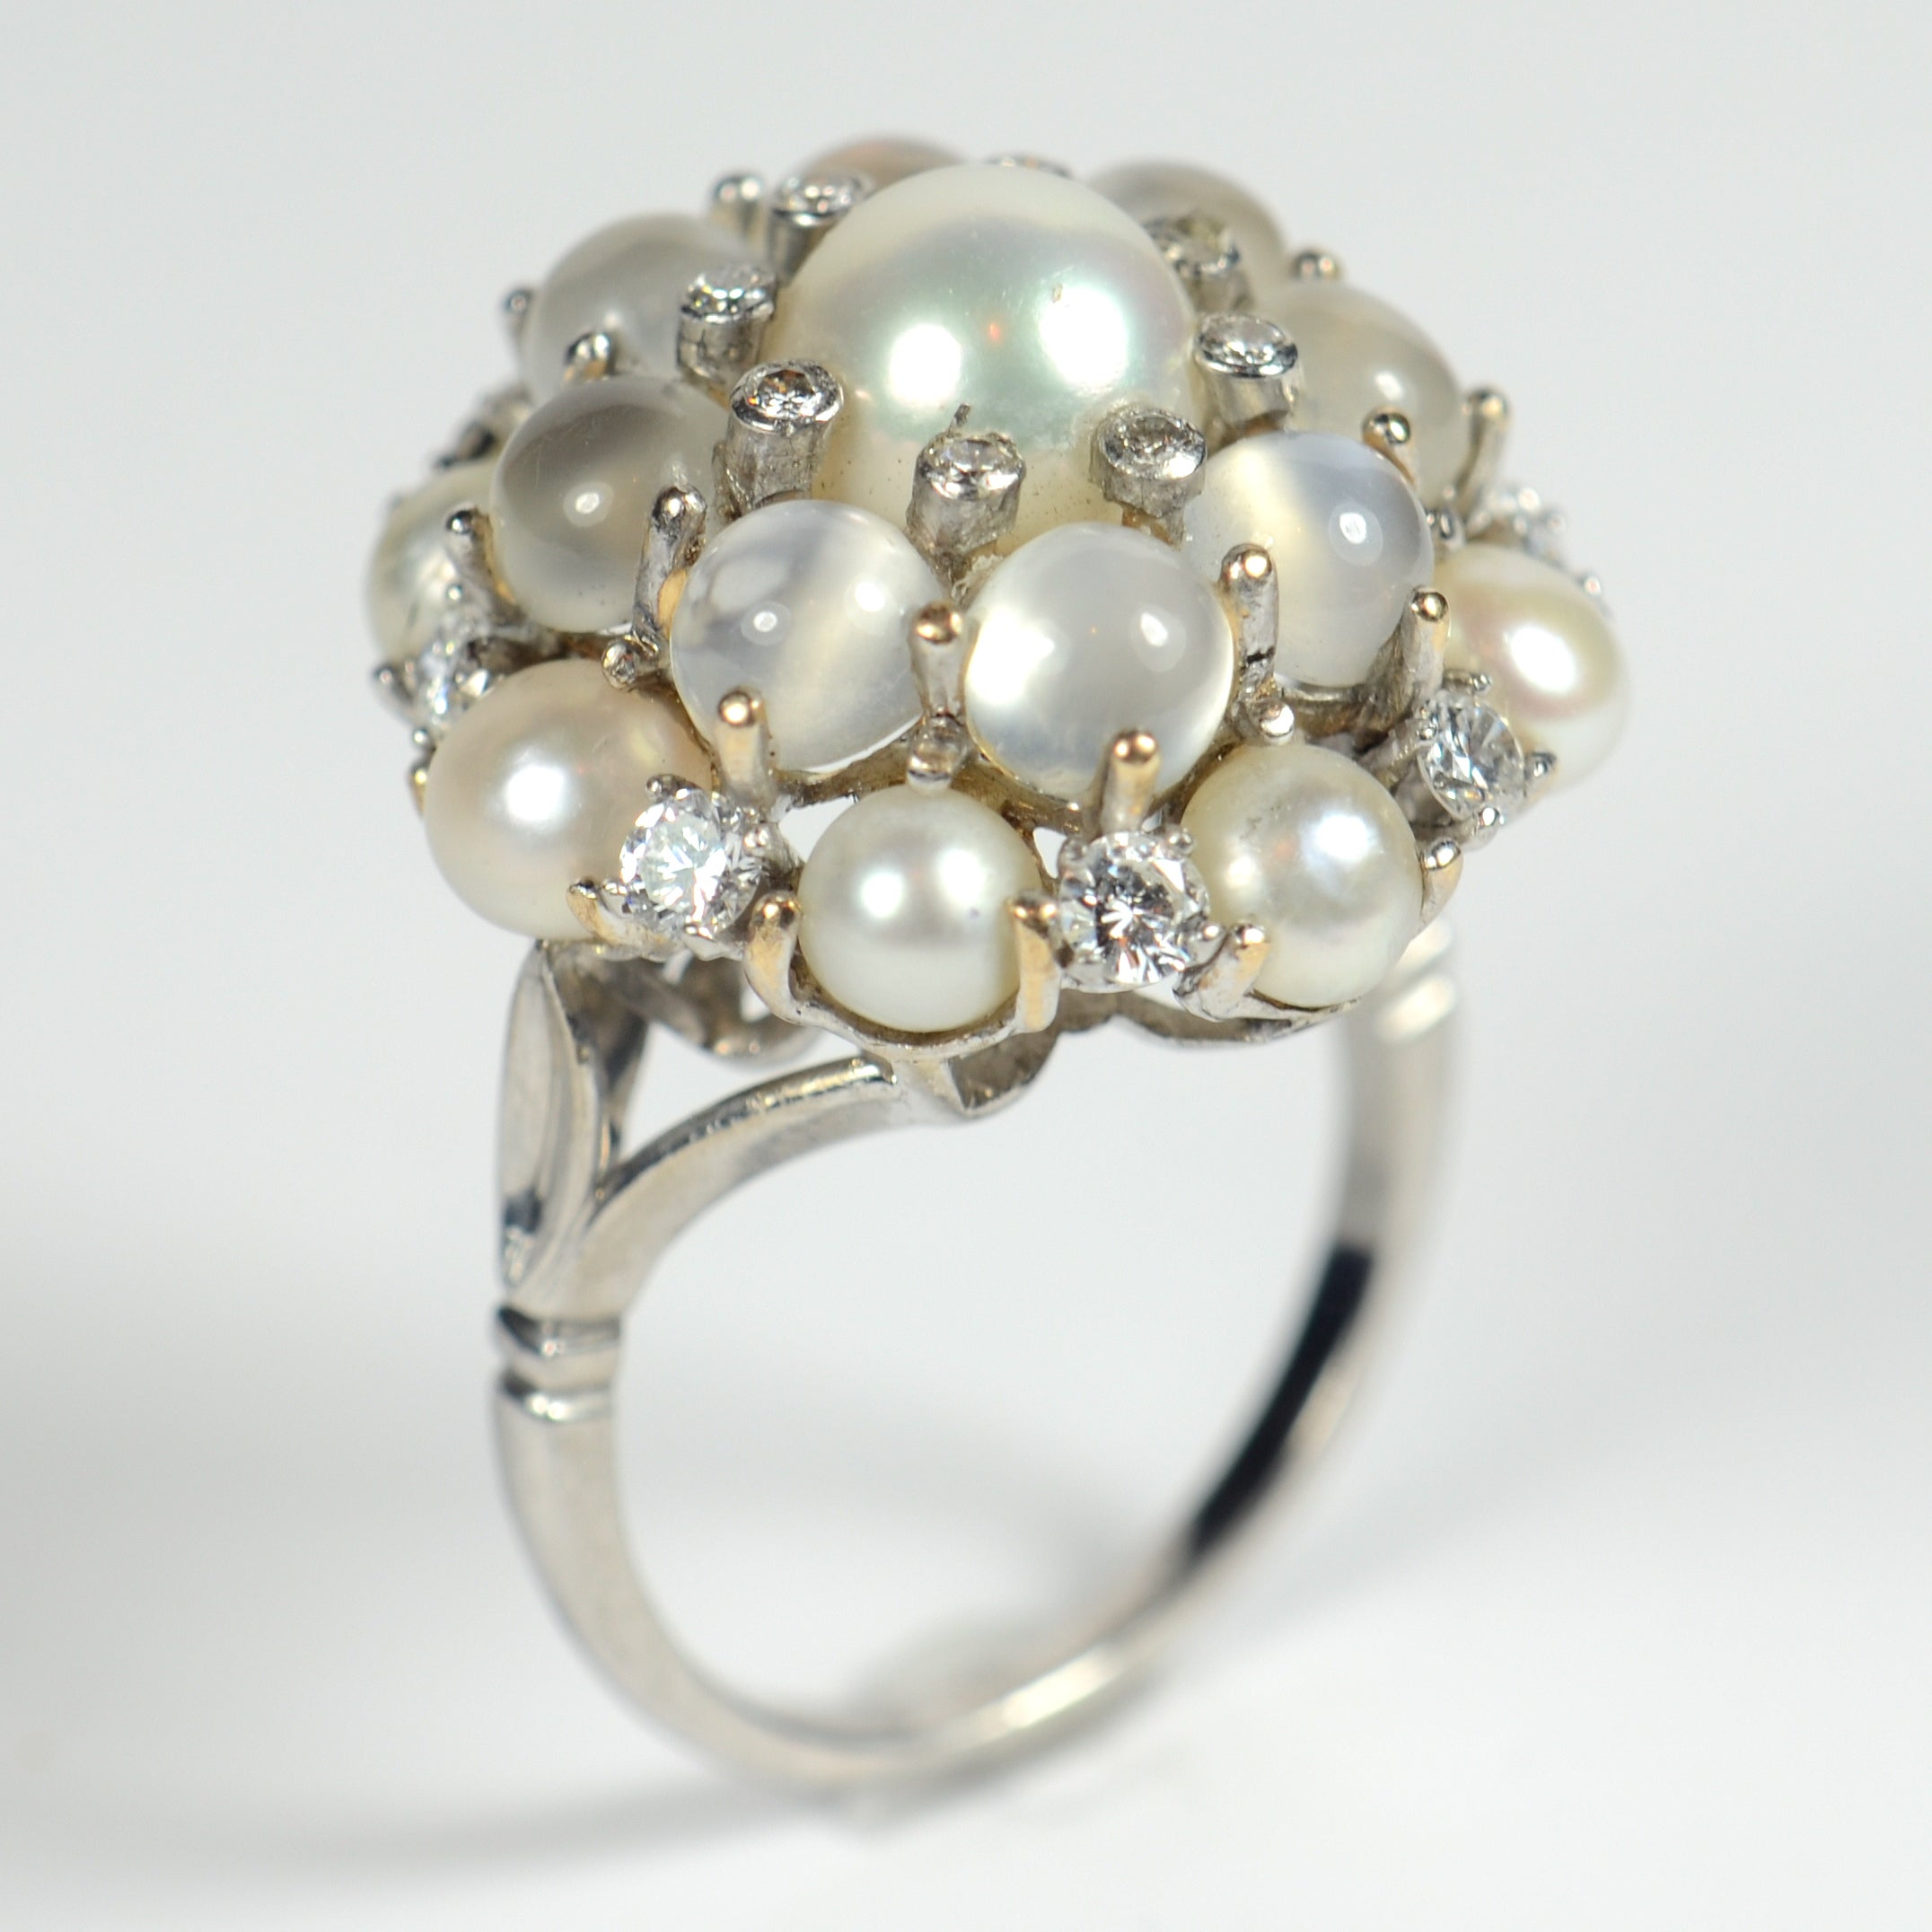 ulka asherton hqlw products moonstone rainbow rings in diamond gold il fullxfull rocks ring